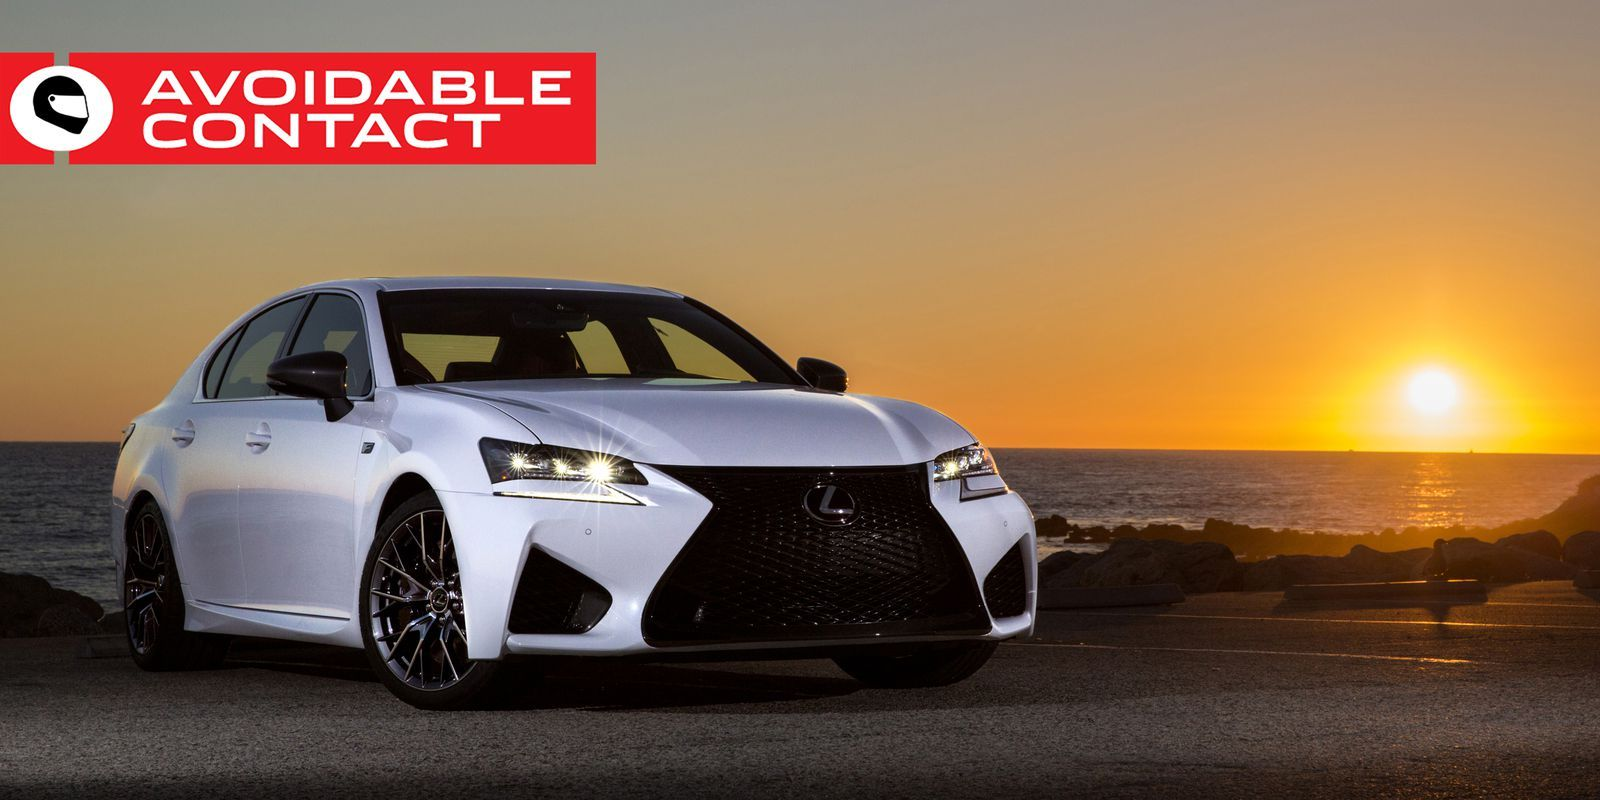 The Lexus GSF Is the Future Classic Nobody Is Talking